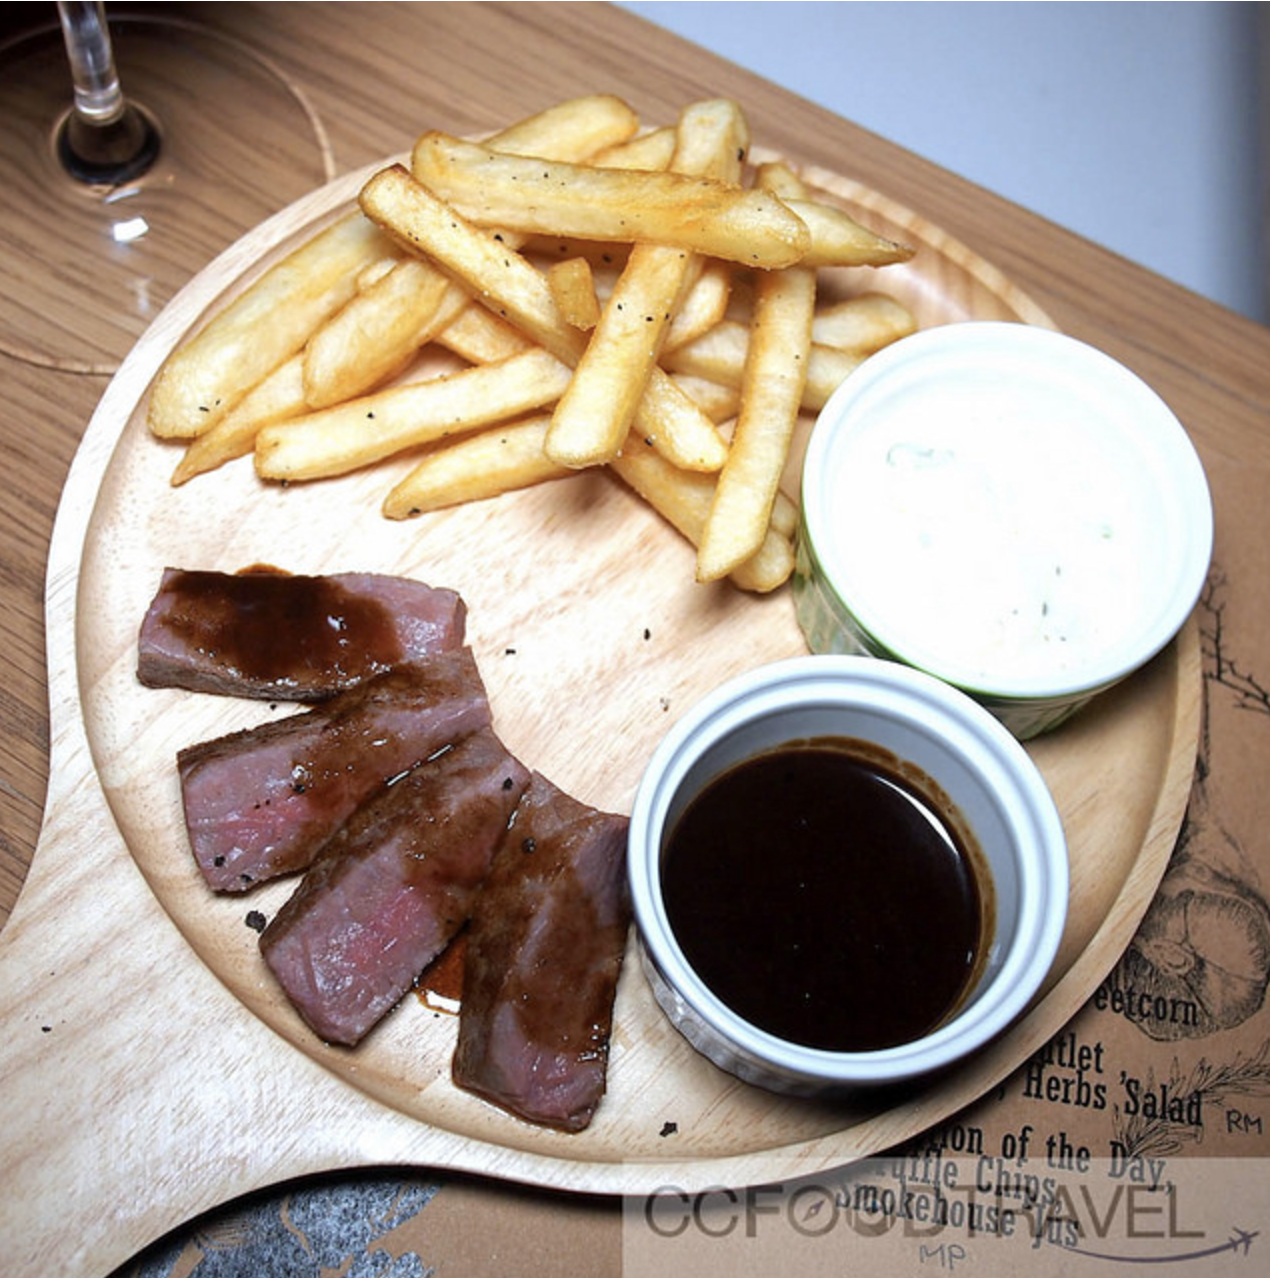 Steak selection of the day (Wagyu), Truffle Chips, Smokehouse jus